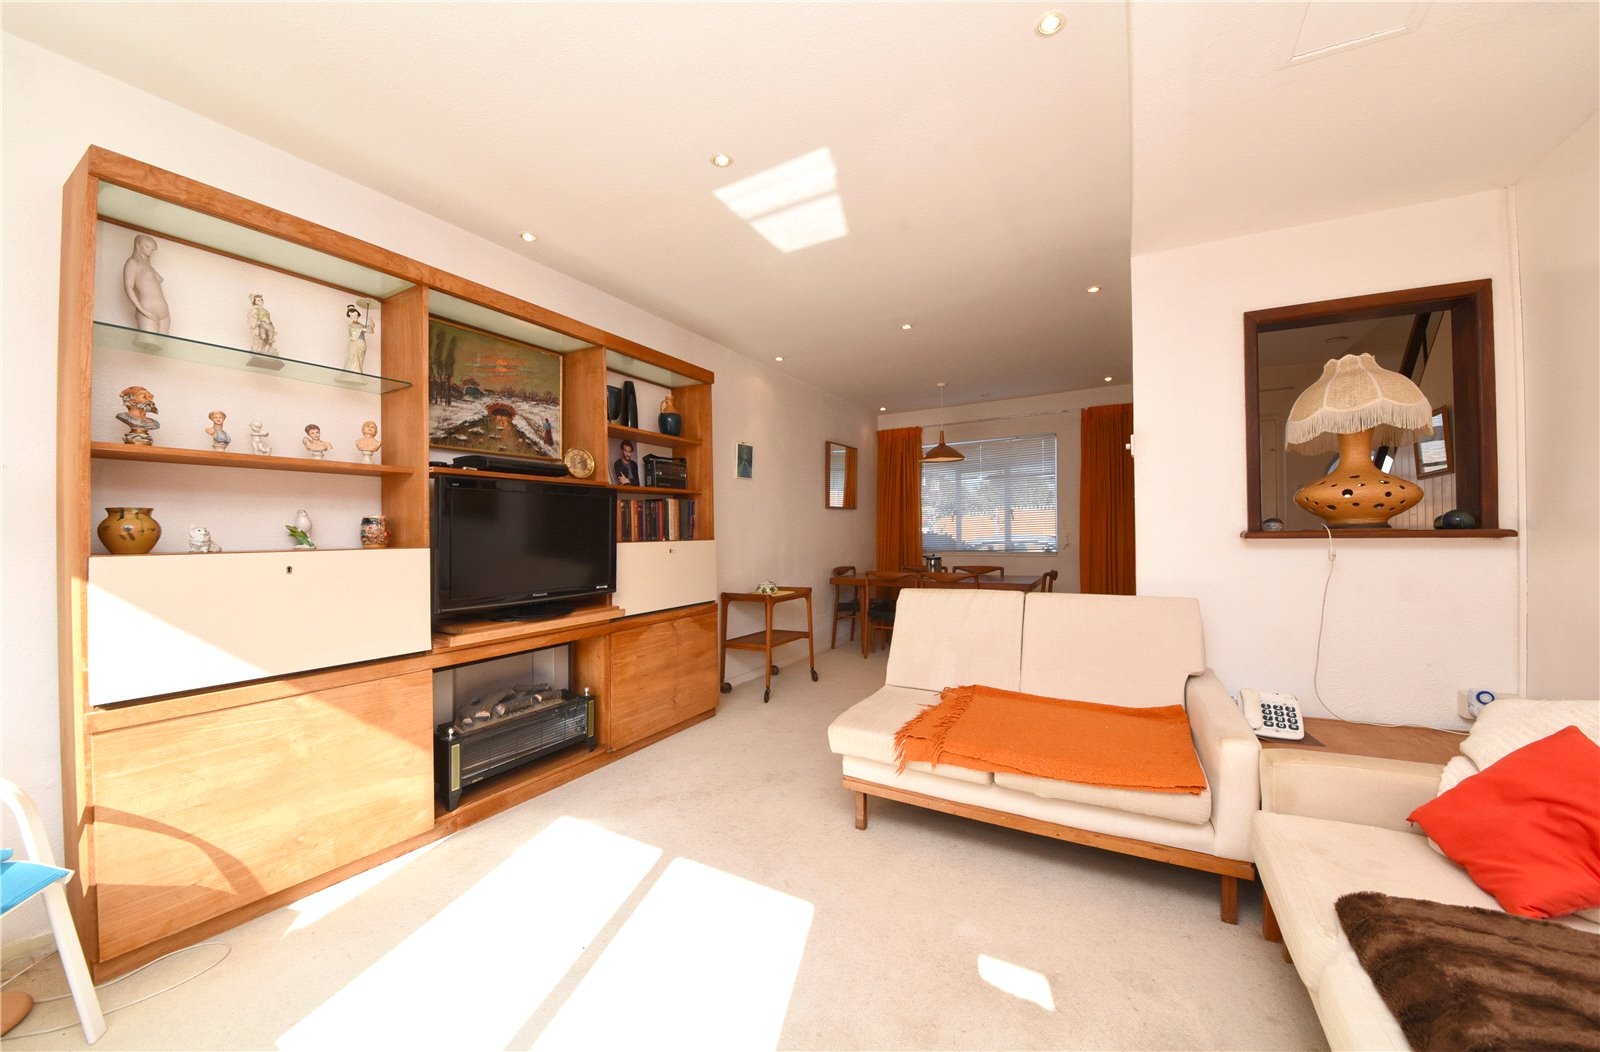 3 bed house for sale in West Finchley, N3 1PB, N3 1